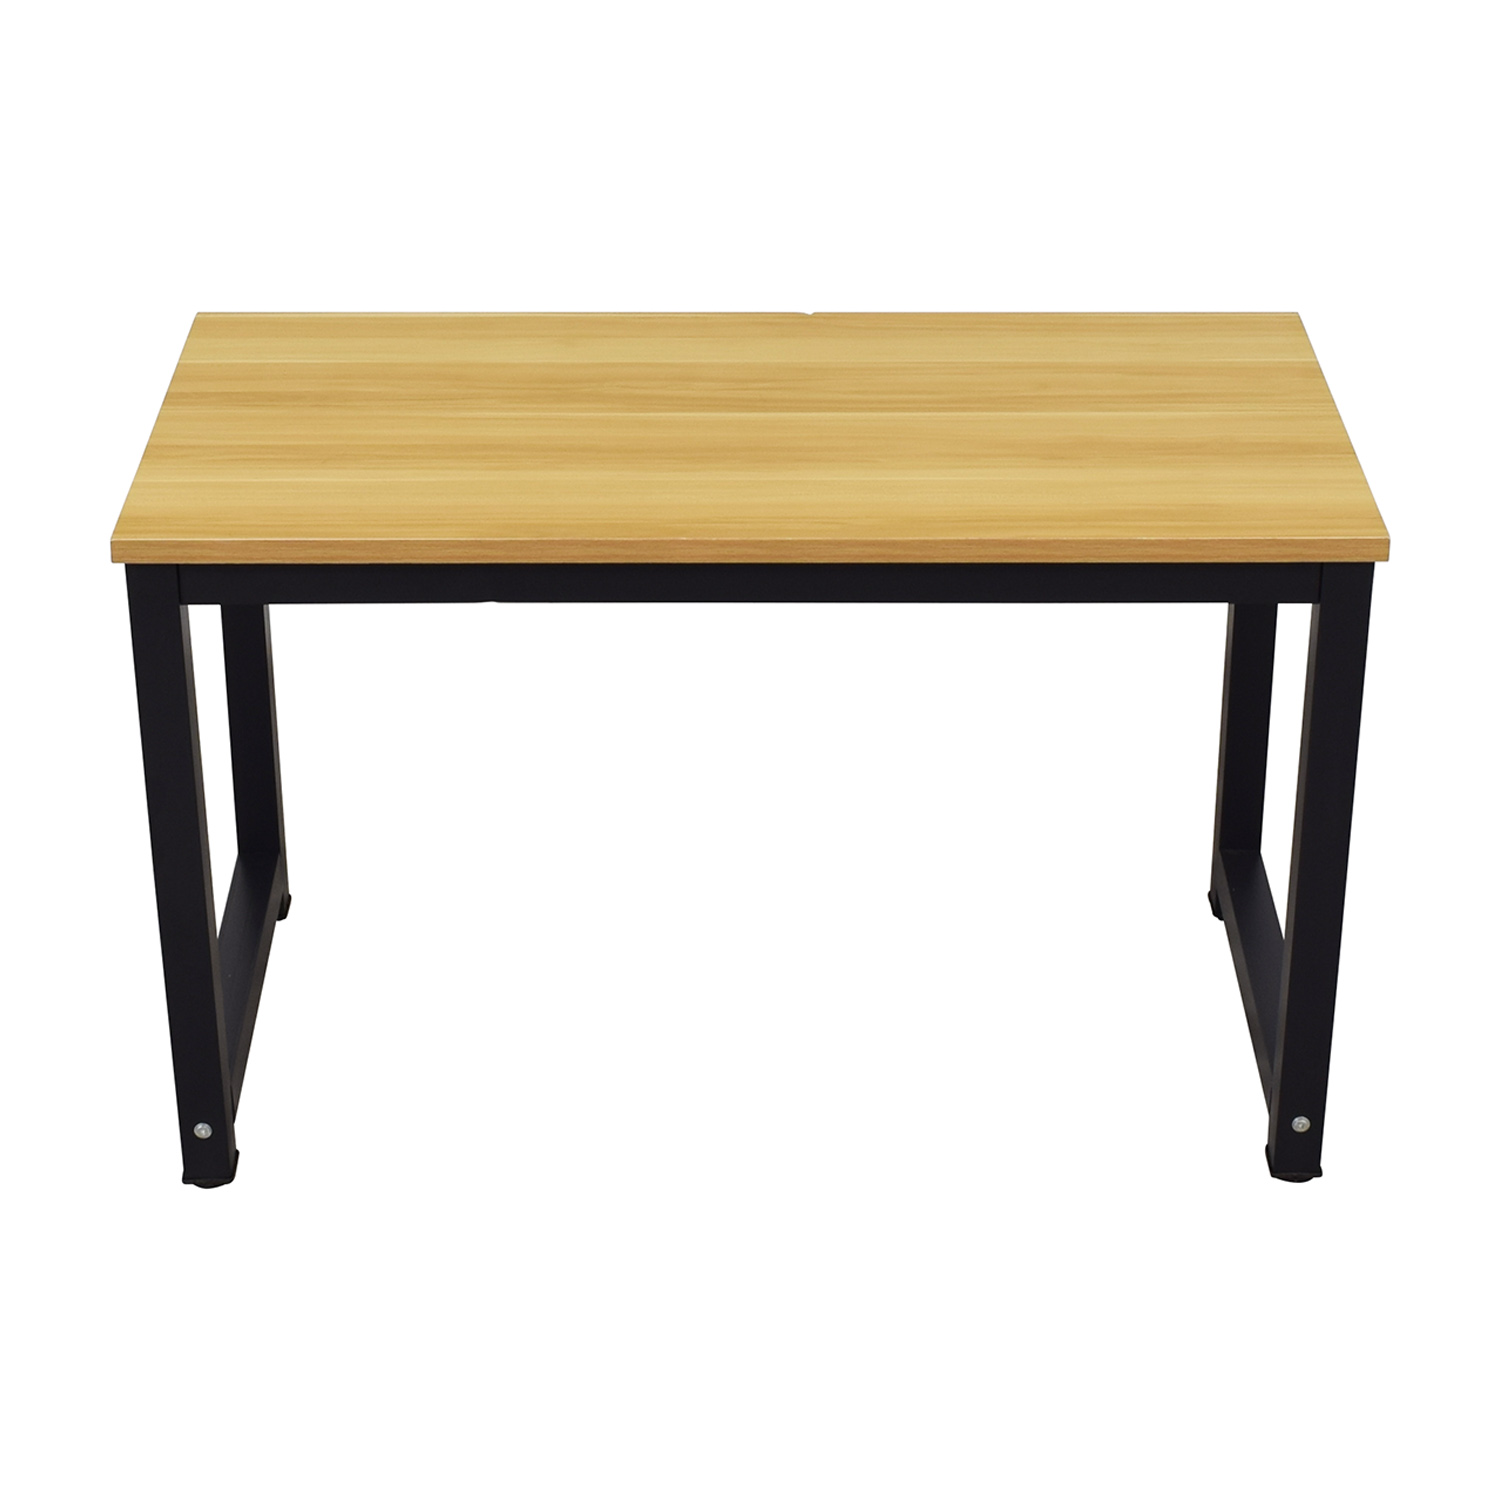 West Elm West Elm Box Frame Desk discount